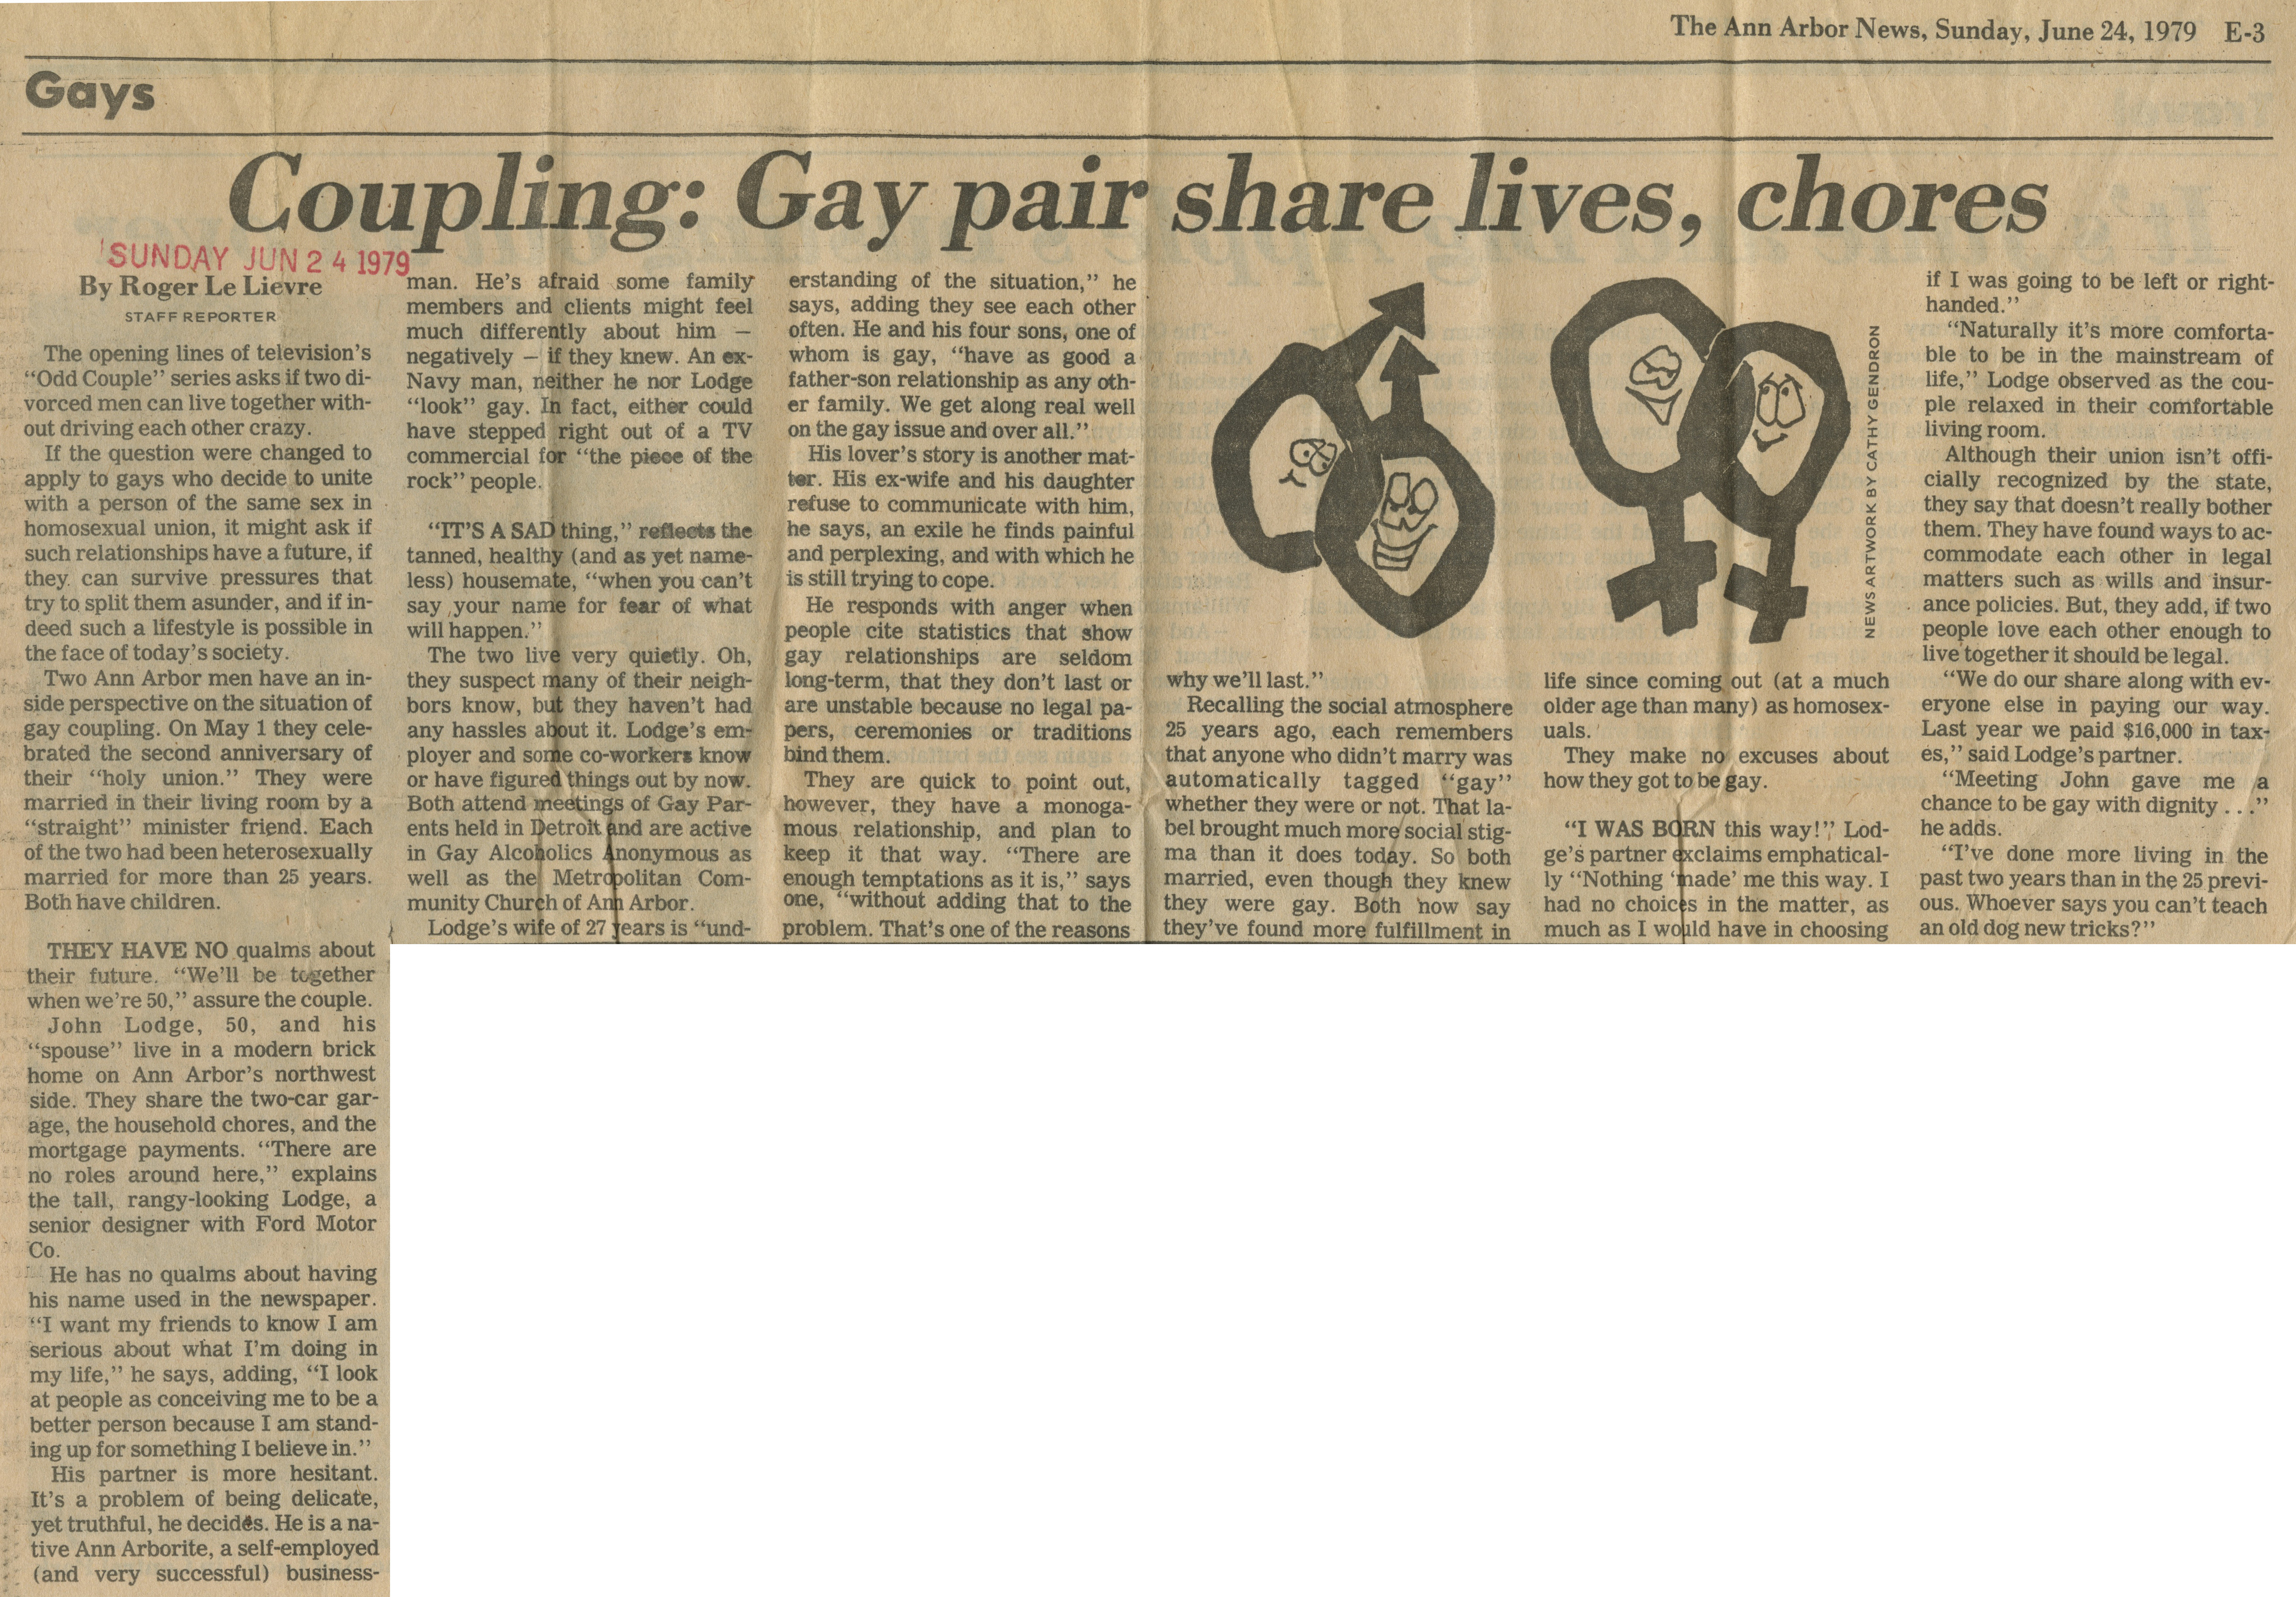 Coupling: Gay Pair Share Lives, Chores image